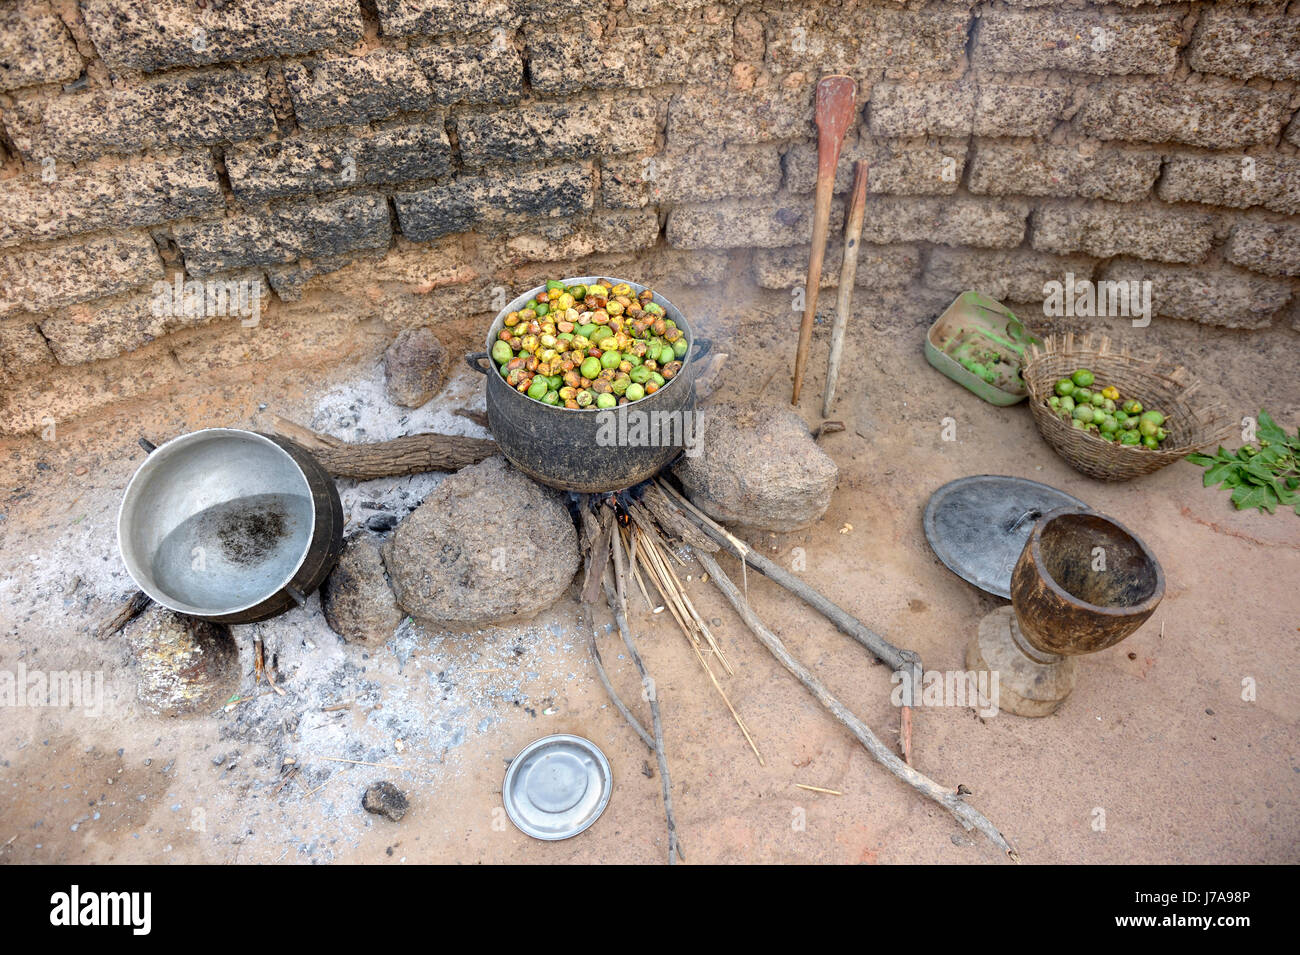 Burkina Faso, village Toeghin, cooking of the fruits of the shea tree - Stock Image